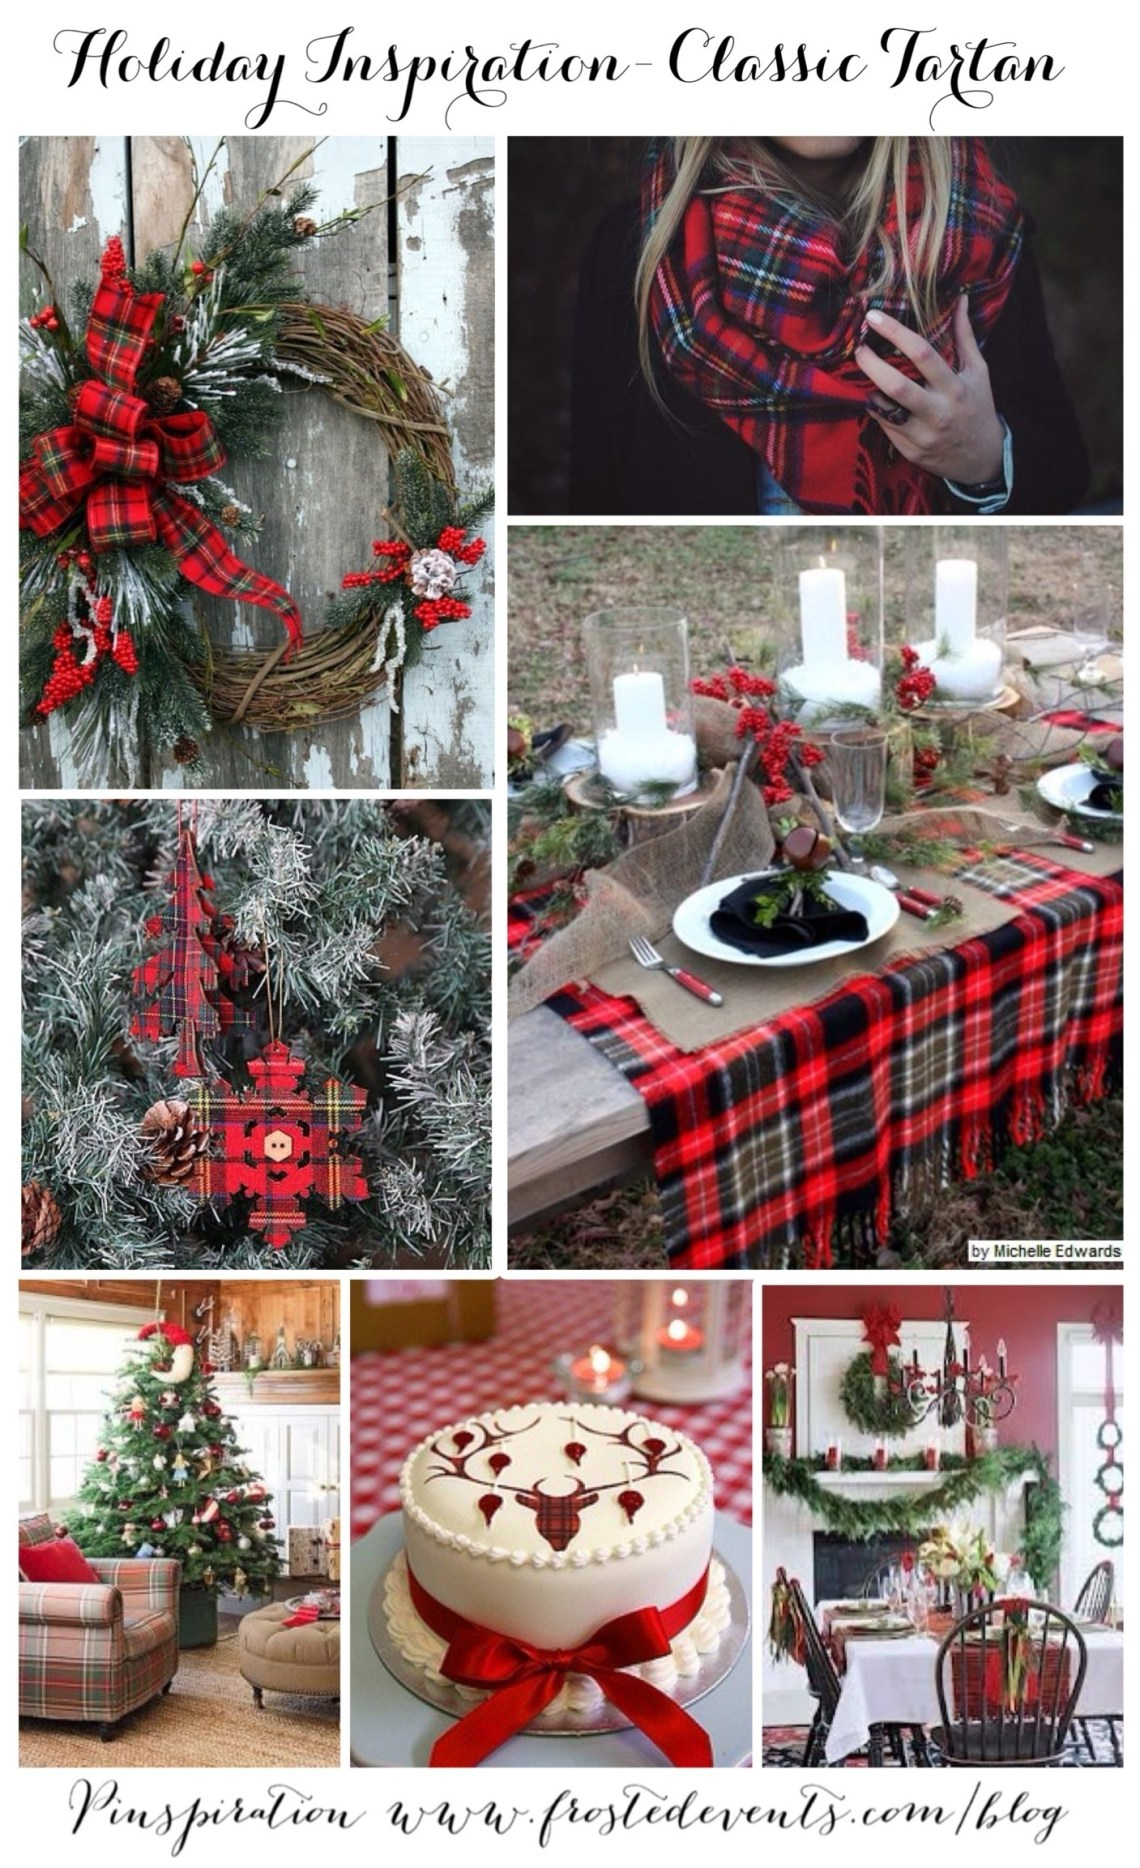 Holiday Inspiration -Classic Tartan Plaid Christmas decor, holiday ideas via Misty Nelson style blogger + influencer frostedevents.com @frostedevents